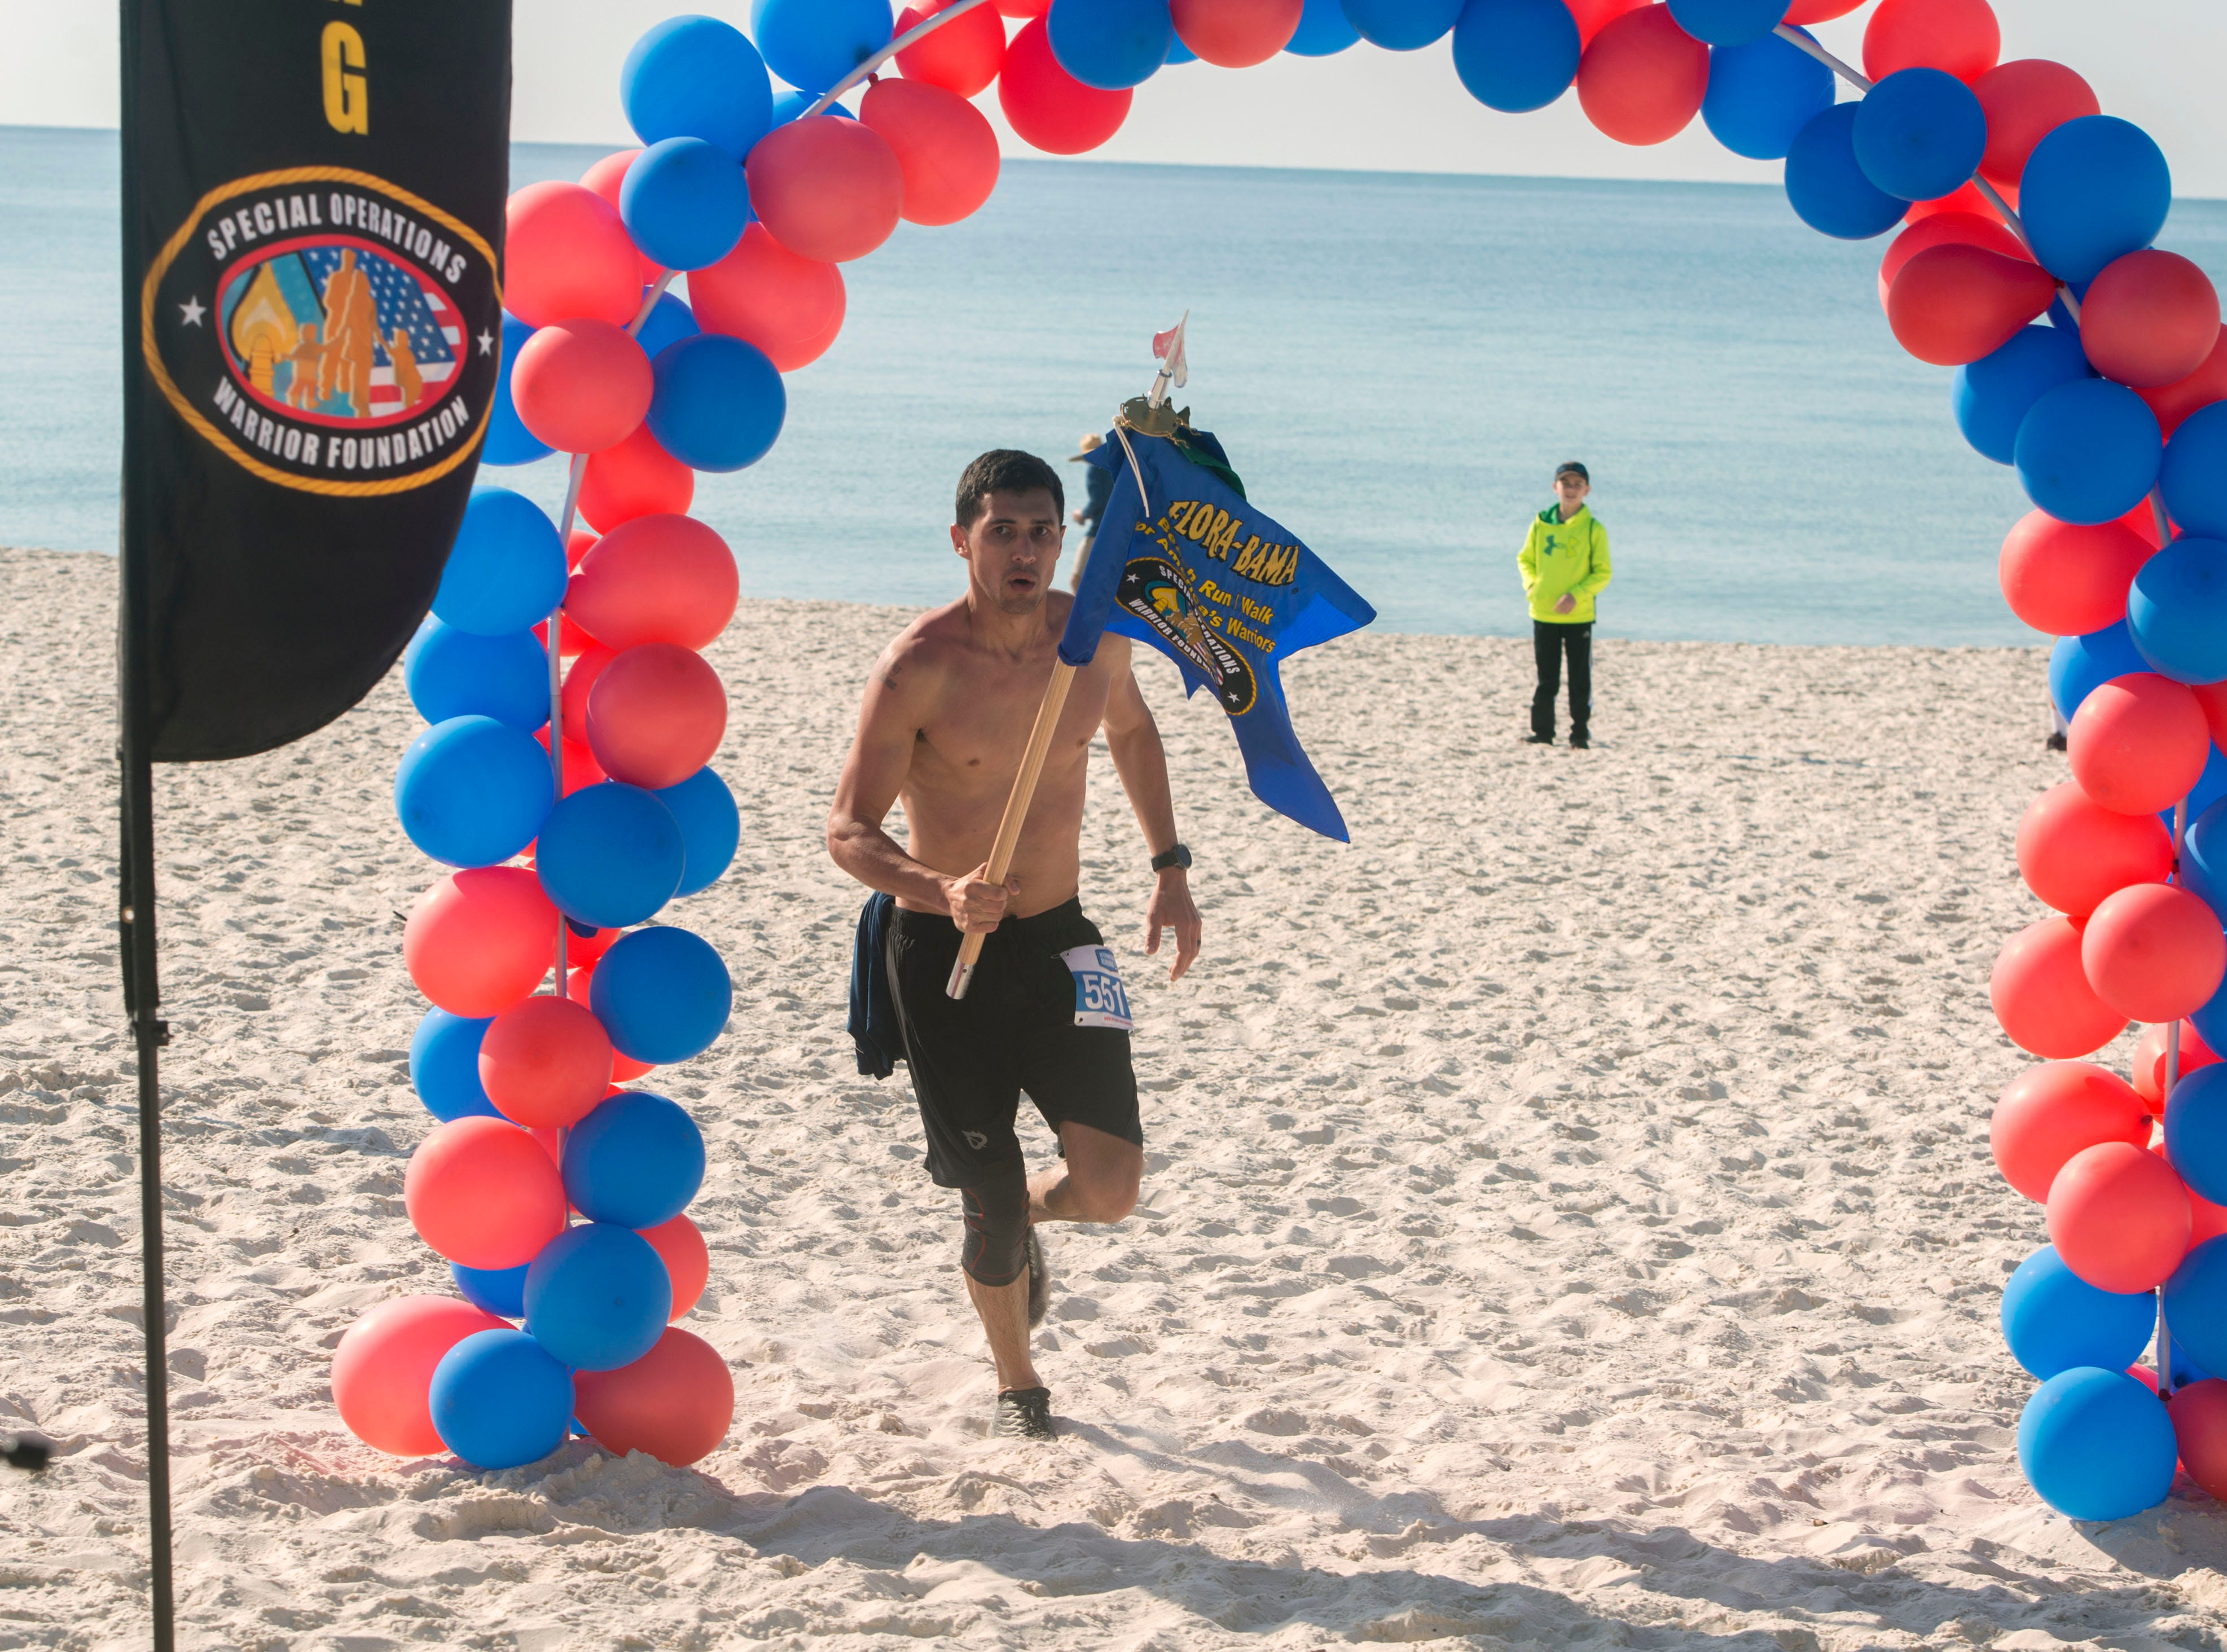 Donald Lach comes across the finish line as the first half marathon finisher Saturday during the 6th annual Flora-Bama Run for America's Warriors half marathon-5k. 100% of the registration fees will go to the Special Operations Warrior Foundation. The Special Operations Warrior Foundation ensures full scholarship grants as well as educational and family counseling to the surviving children of Army, Navy, Air Force and Marine Corps special operations personnel who lose their lives in the line of duty and immediate financial assistance for severely wounded special operations personnel and their families.